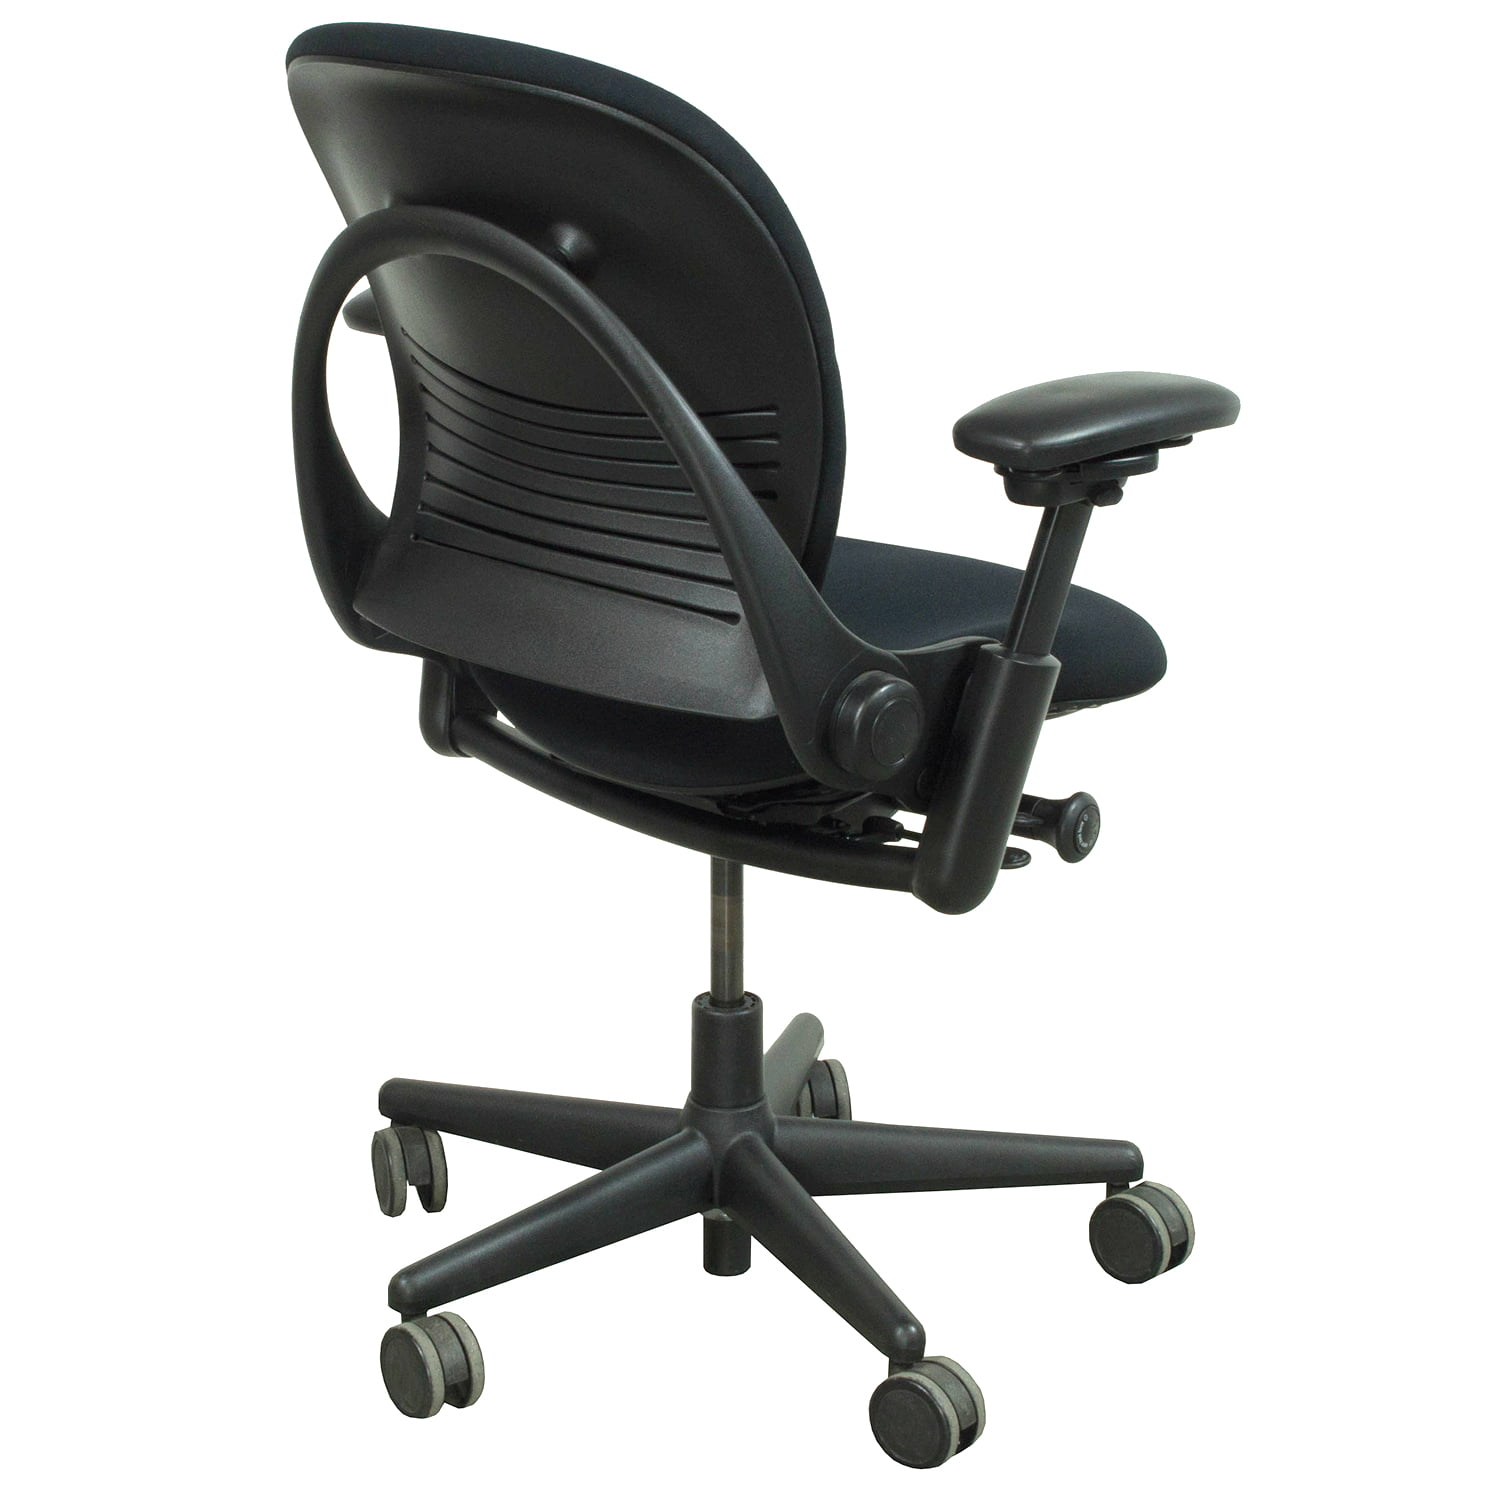 Steelcase Desk Chair Steelcase Leap 1 Office Chair Unisource Office Furniture